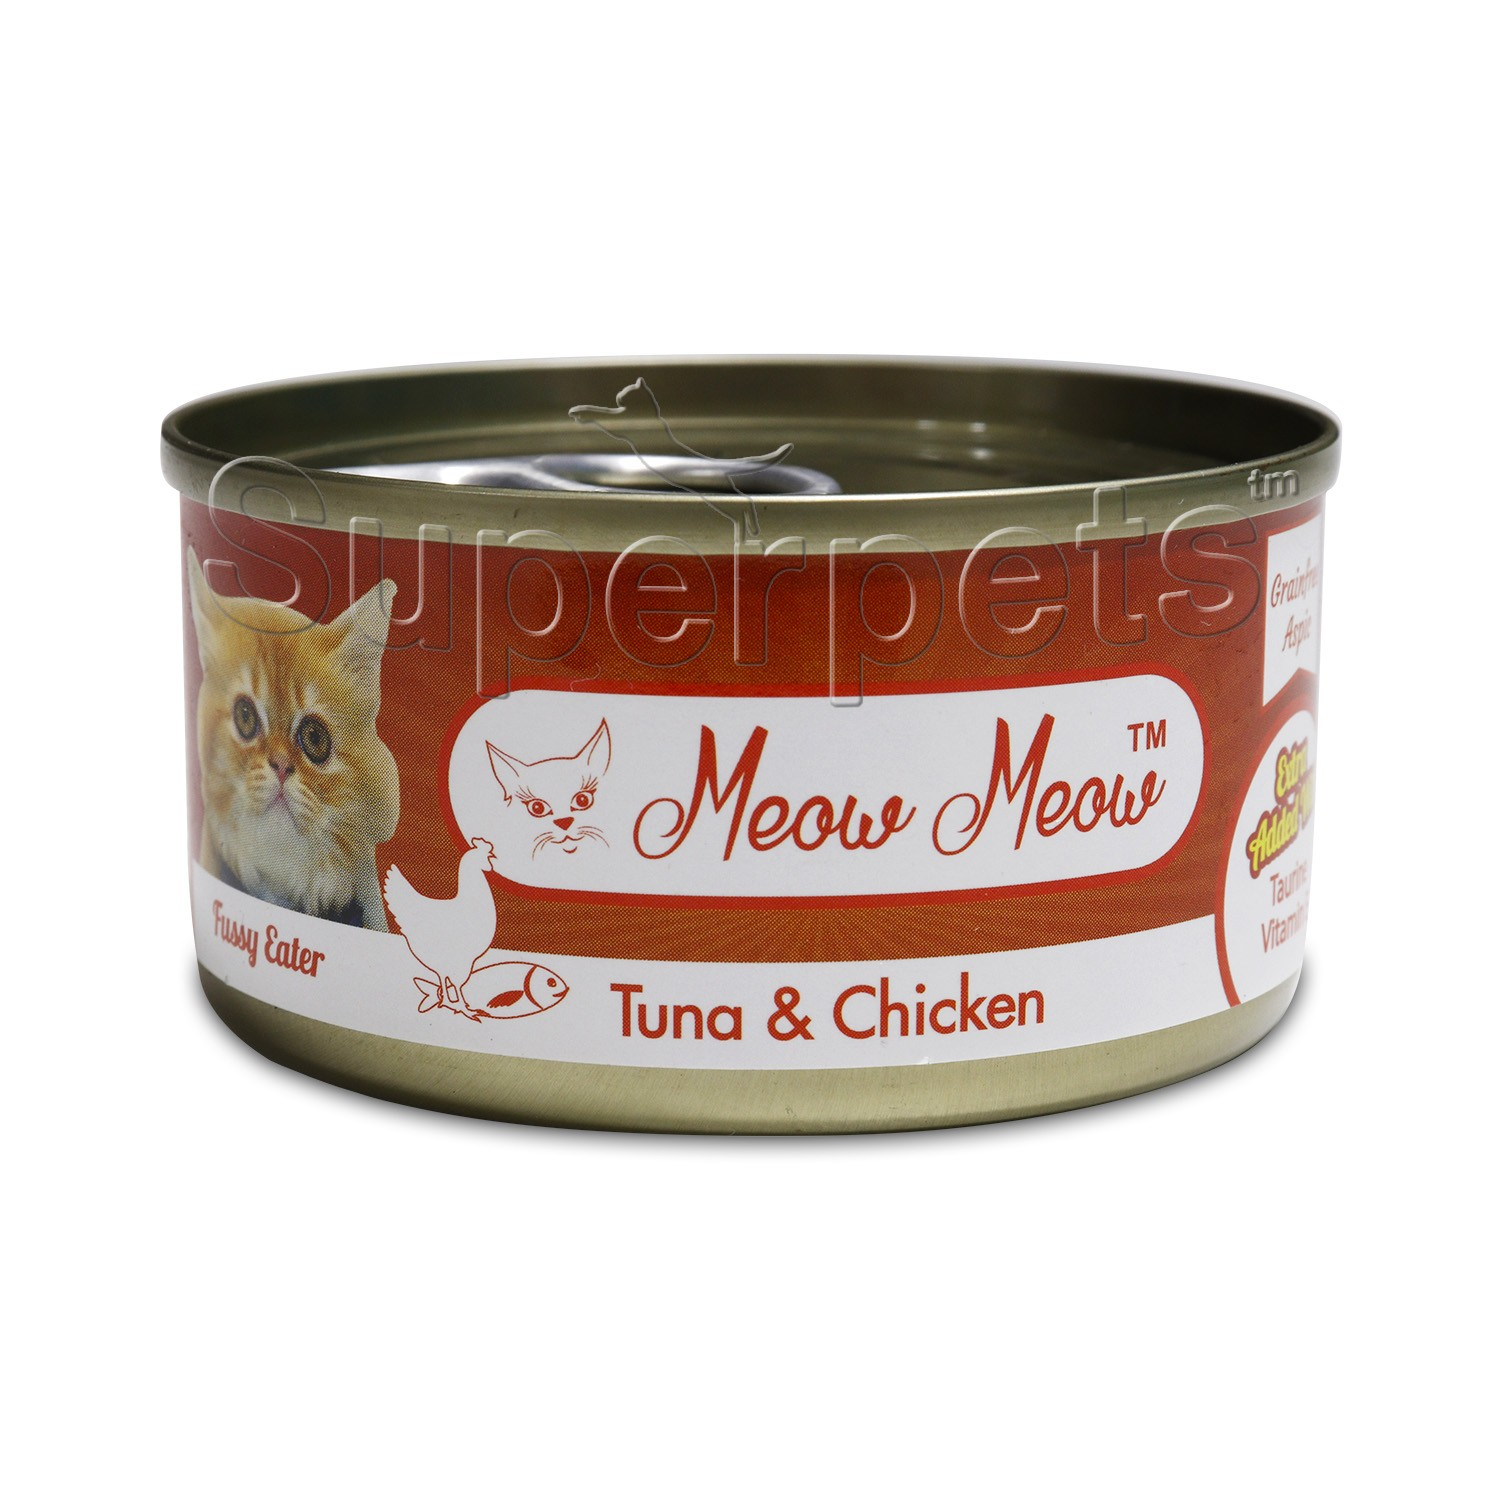 Meow Meow – Tuna & Chicken – Grain Free 80g